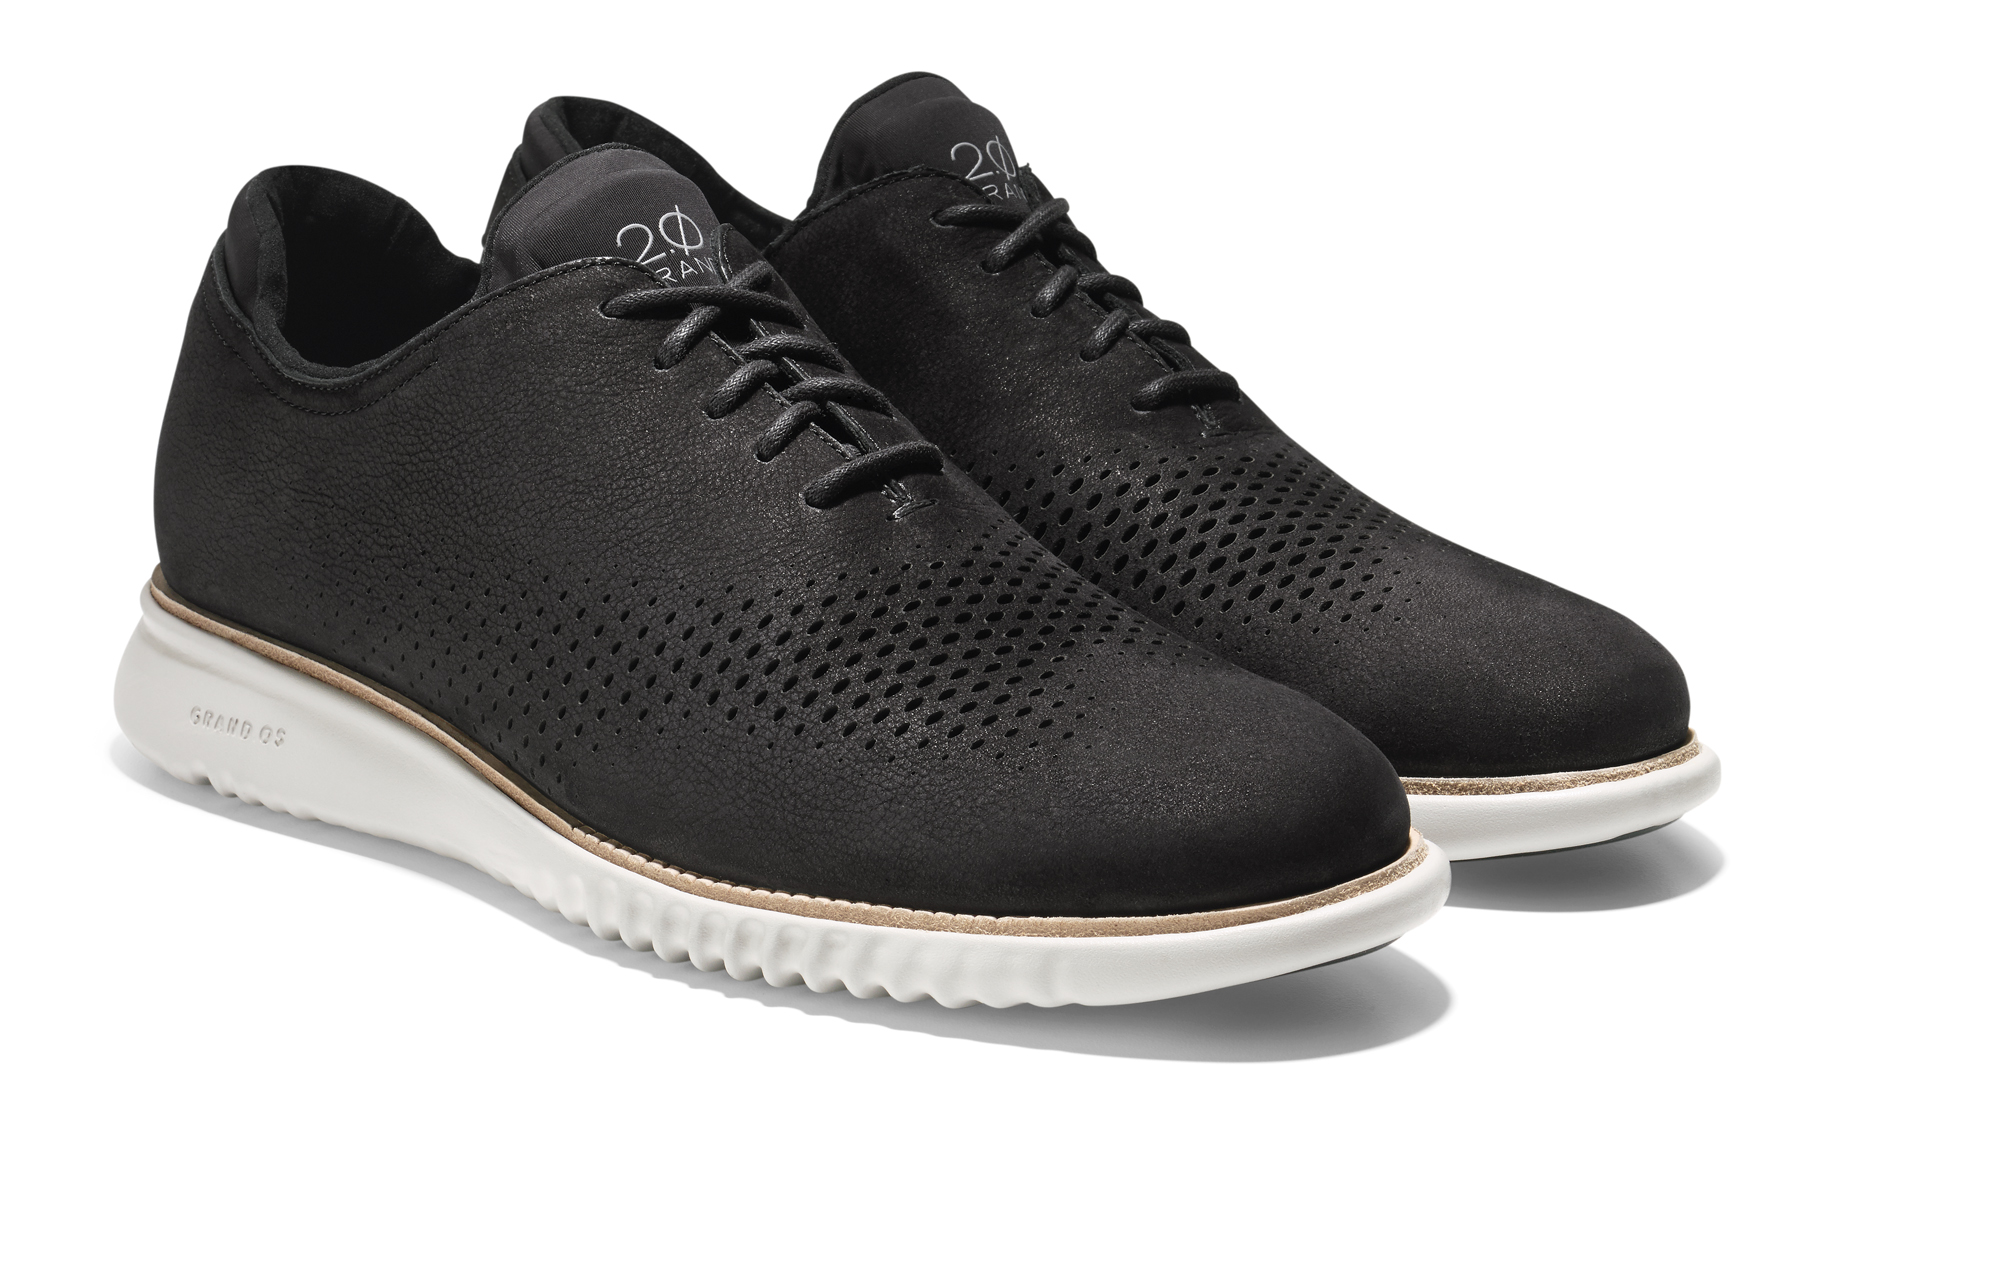 Cole Haan_2. ZERØGRAND Wing Oxford_Black Nubuck